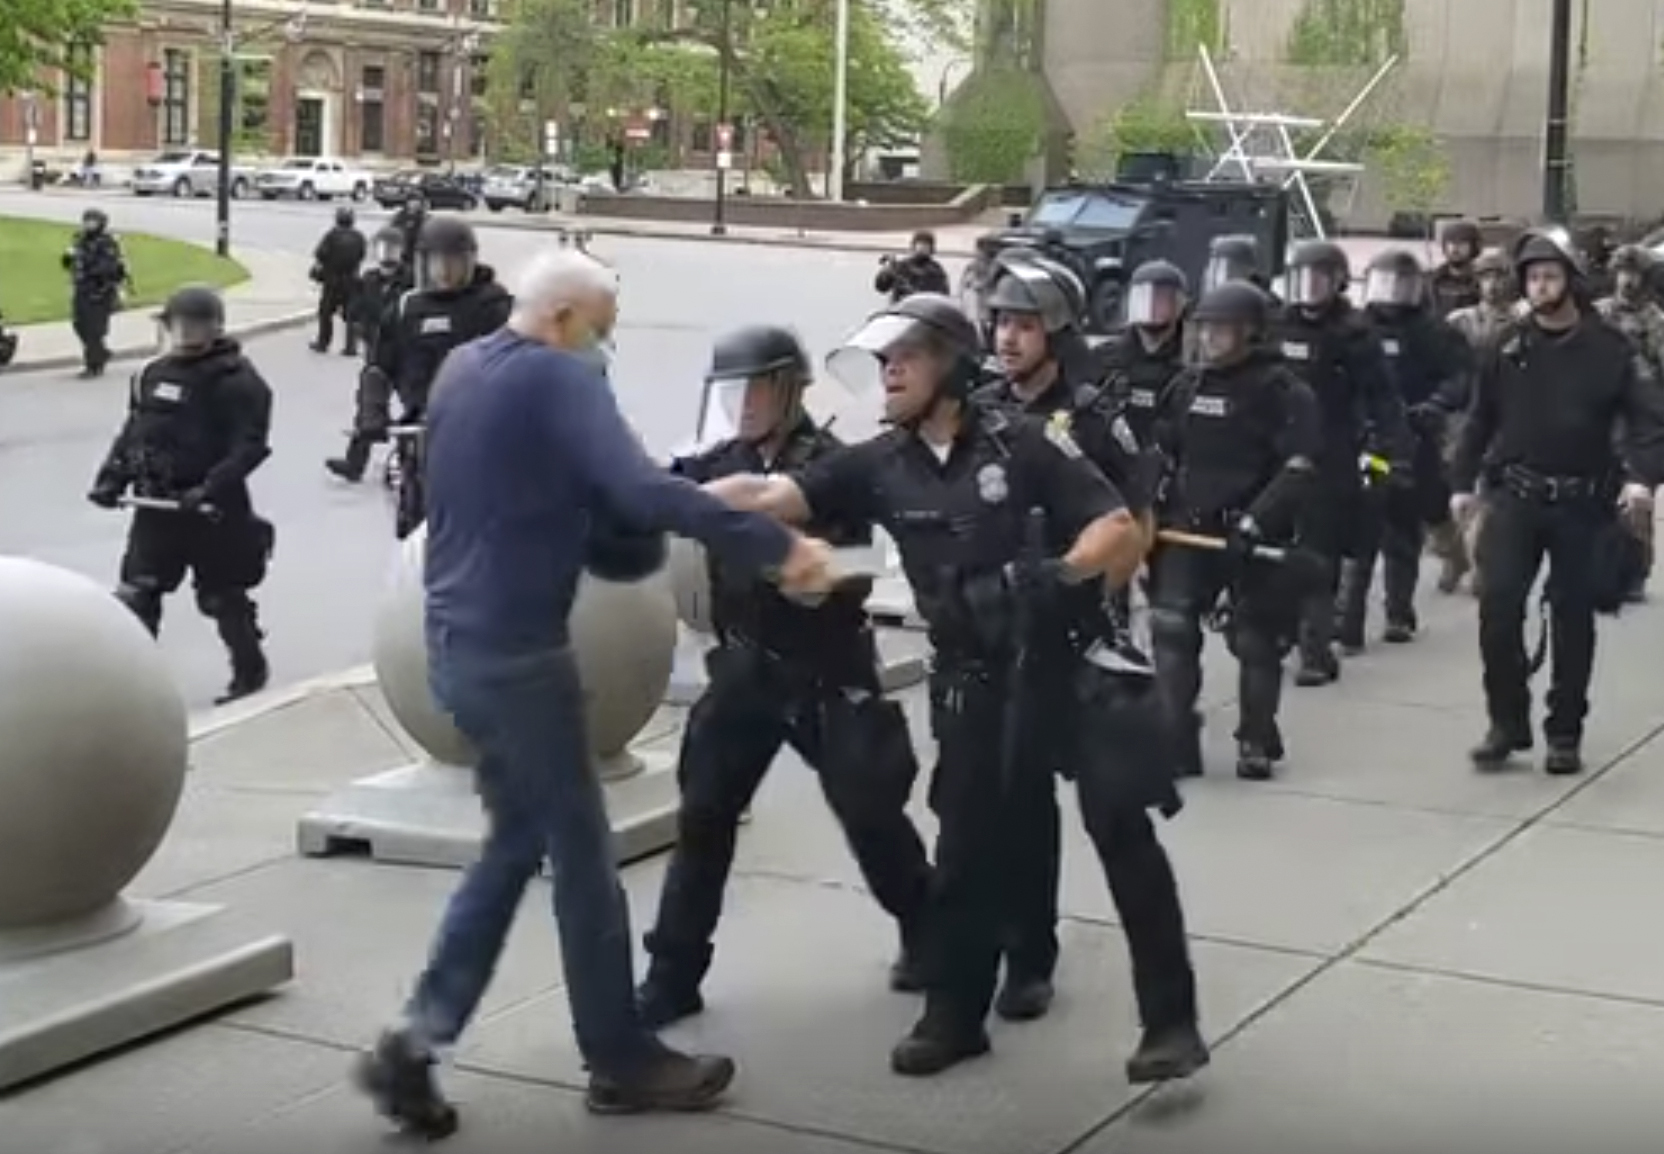 In this image from video provided by WBFO, a police officer appears to shove a man who walked up to police June 4, 2020, in Buffalo, New York.